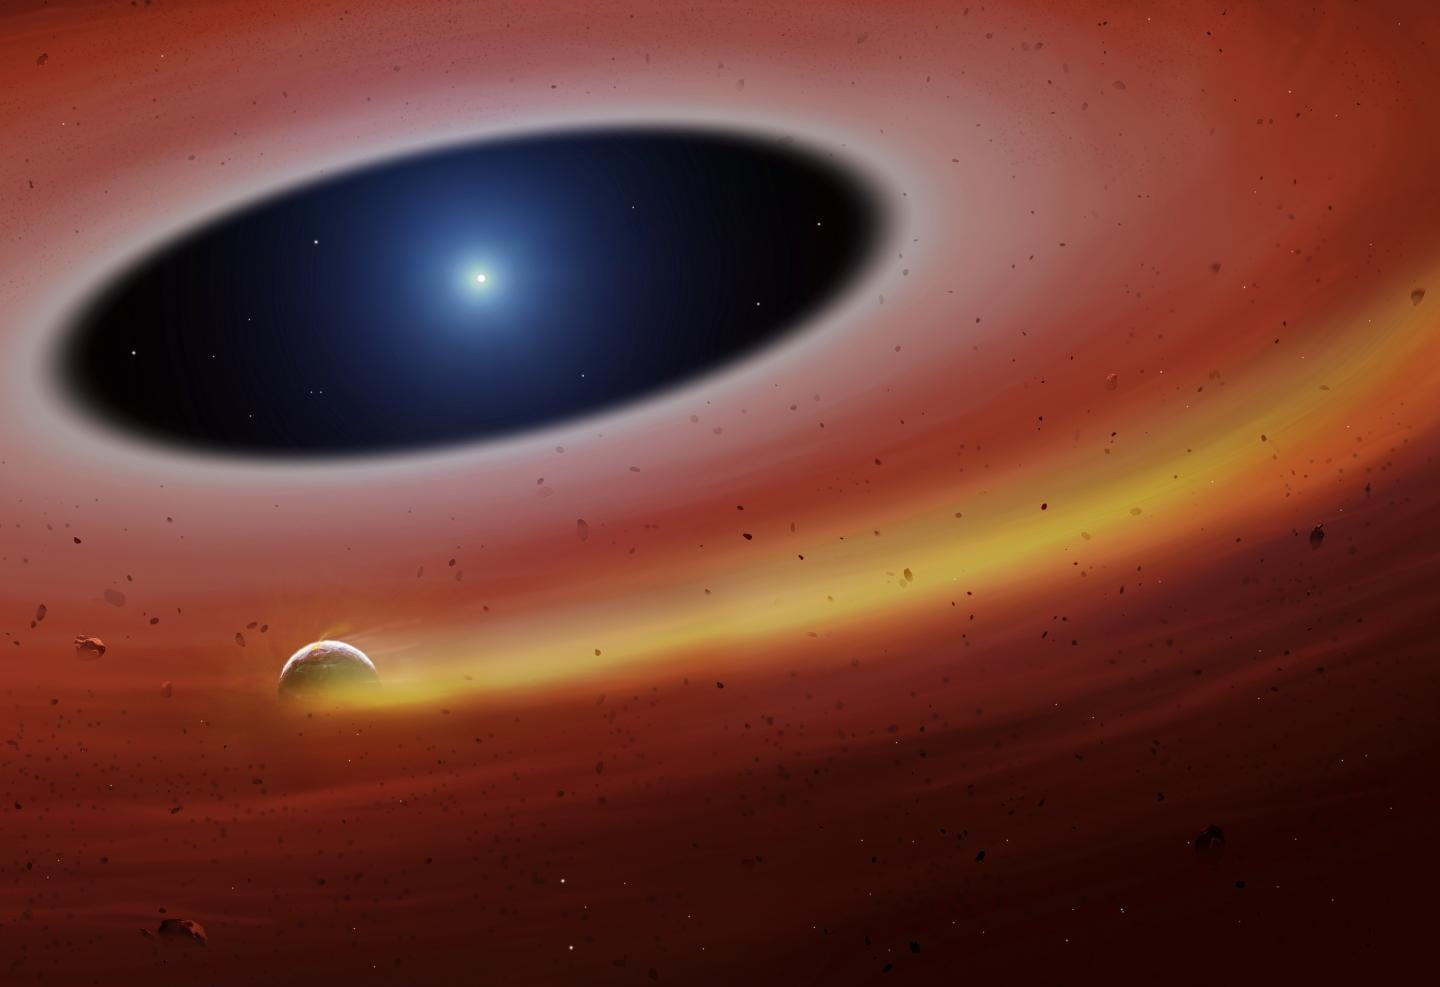 Death of a planet: Astronomers discover grisly scene of planetary destruction